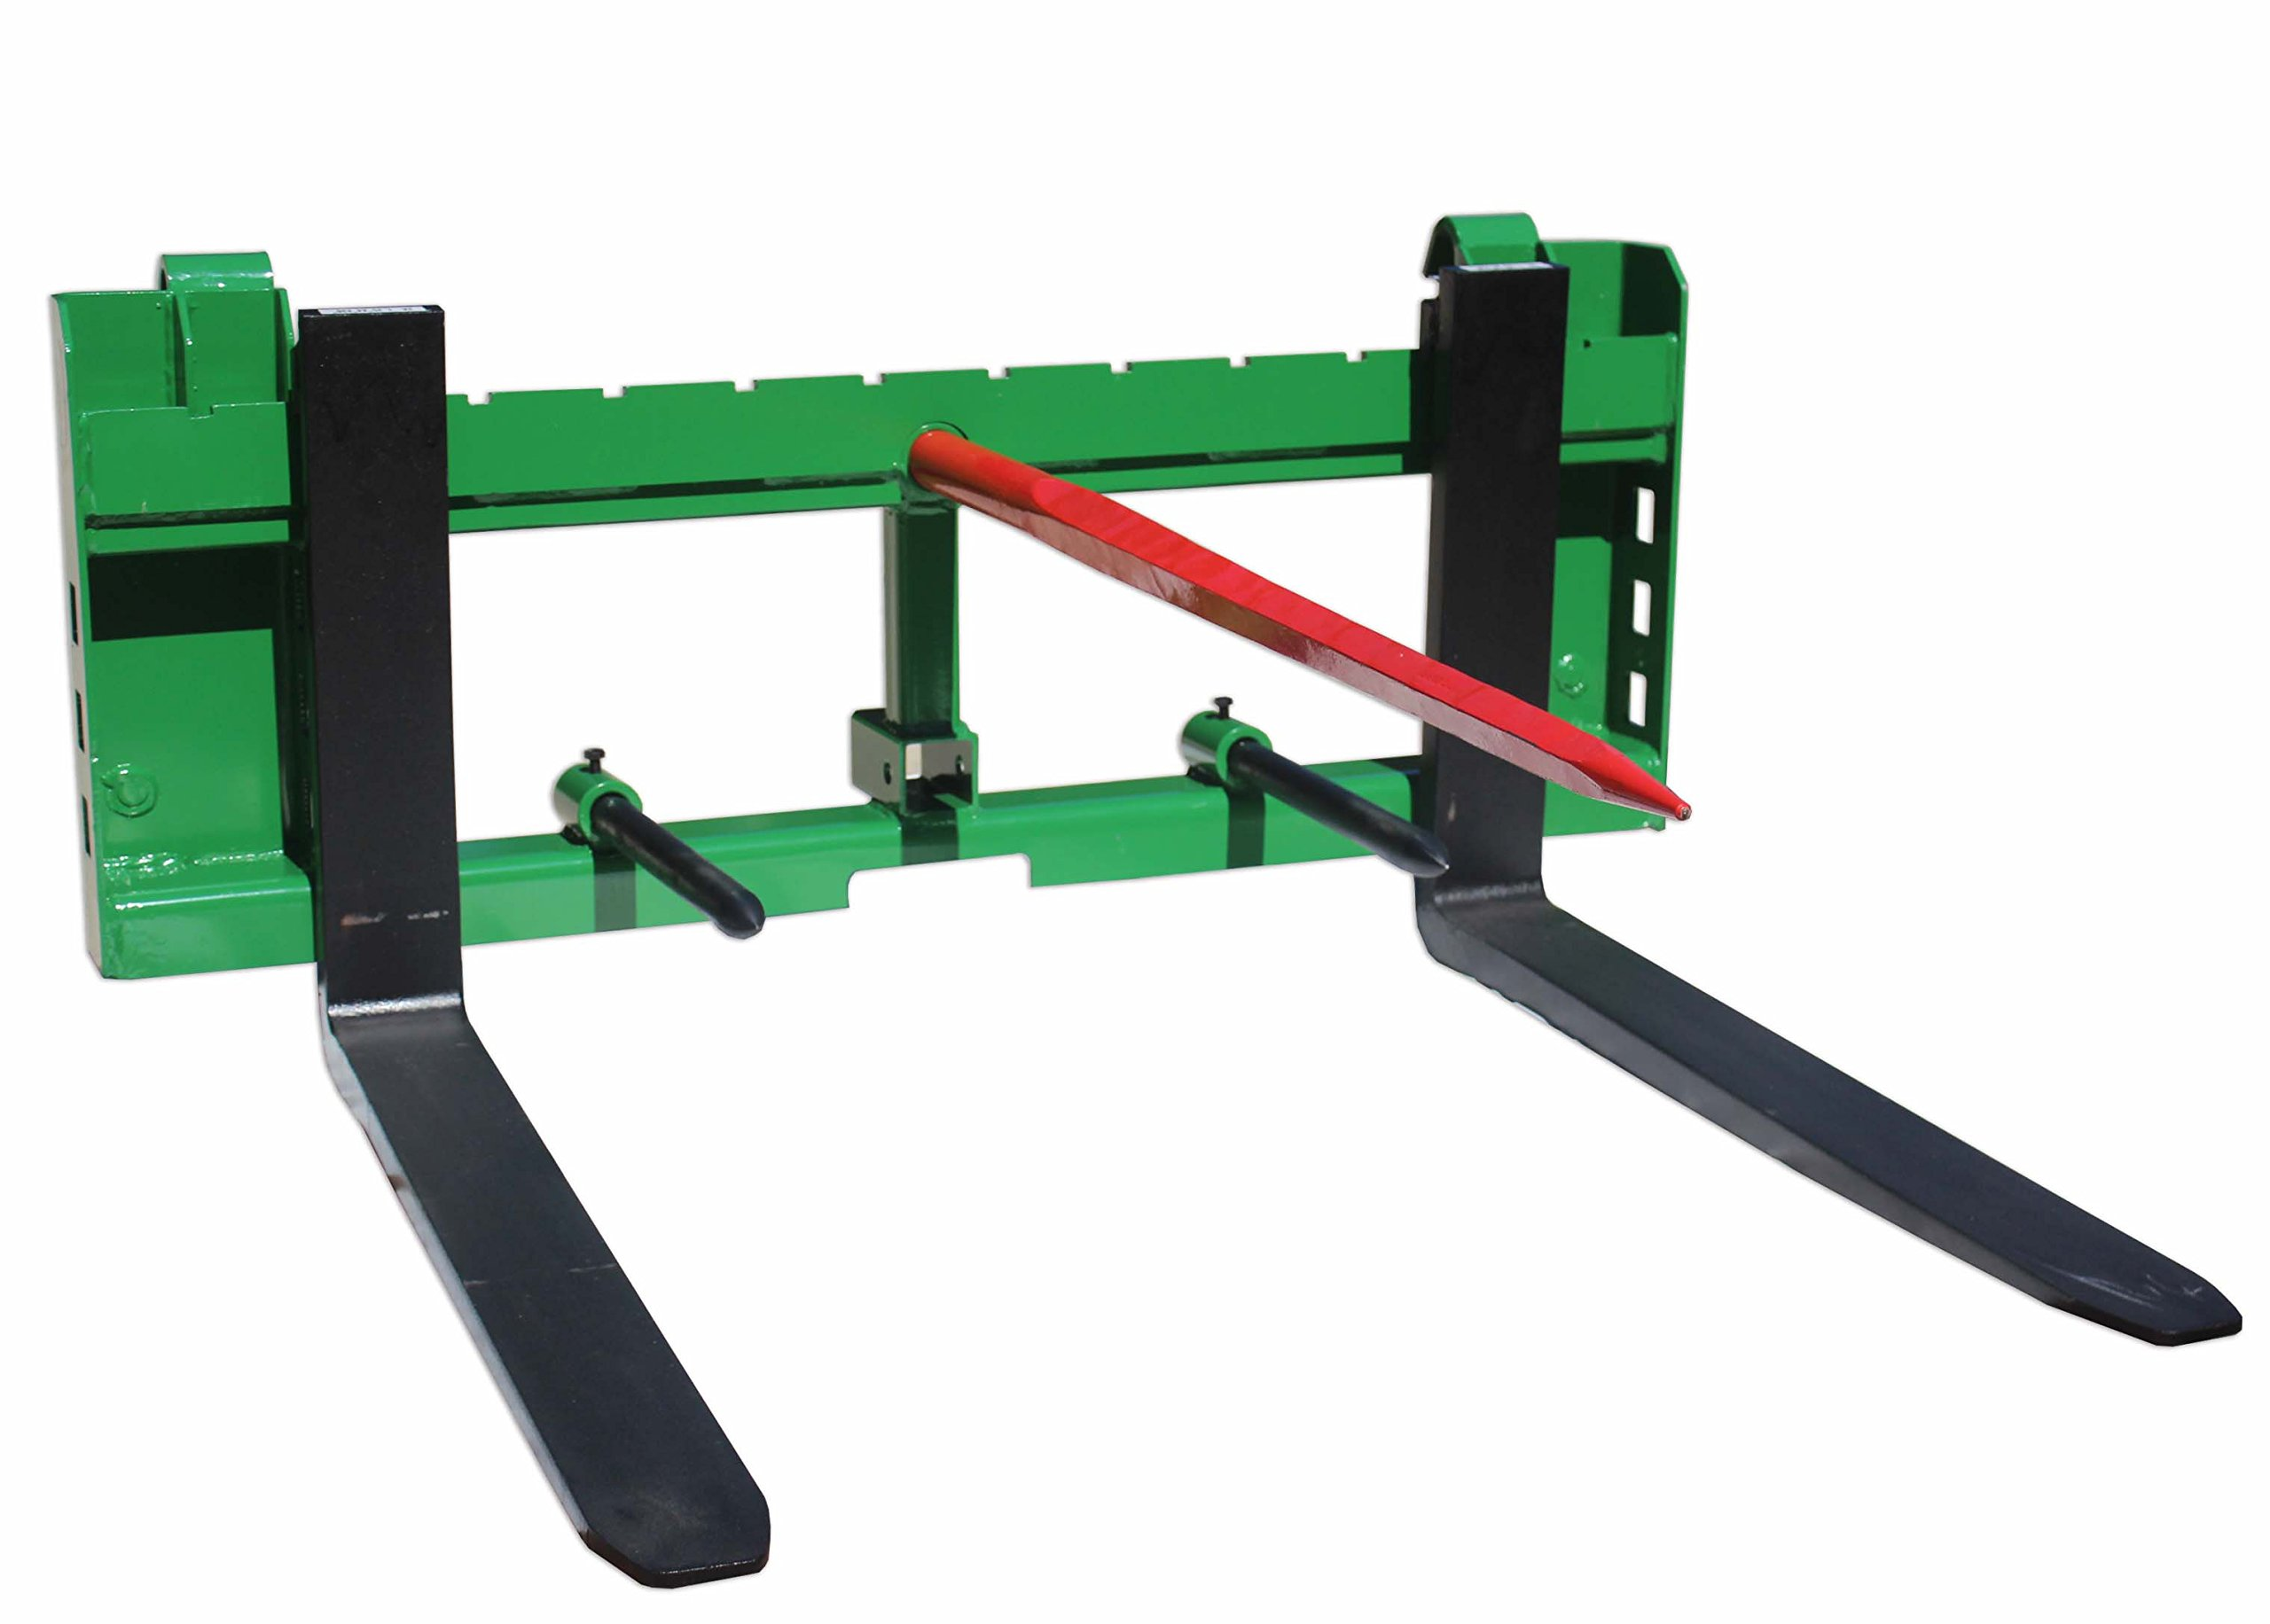 Titan John Deere 42'' Pallet Fork 49'' Hay Bale Spear Attachment w/ Trailer Hitch by Titan Attachments